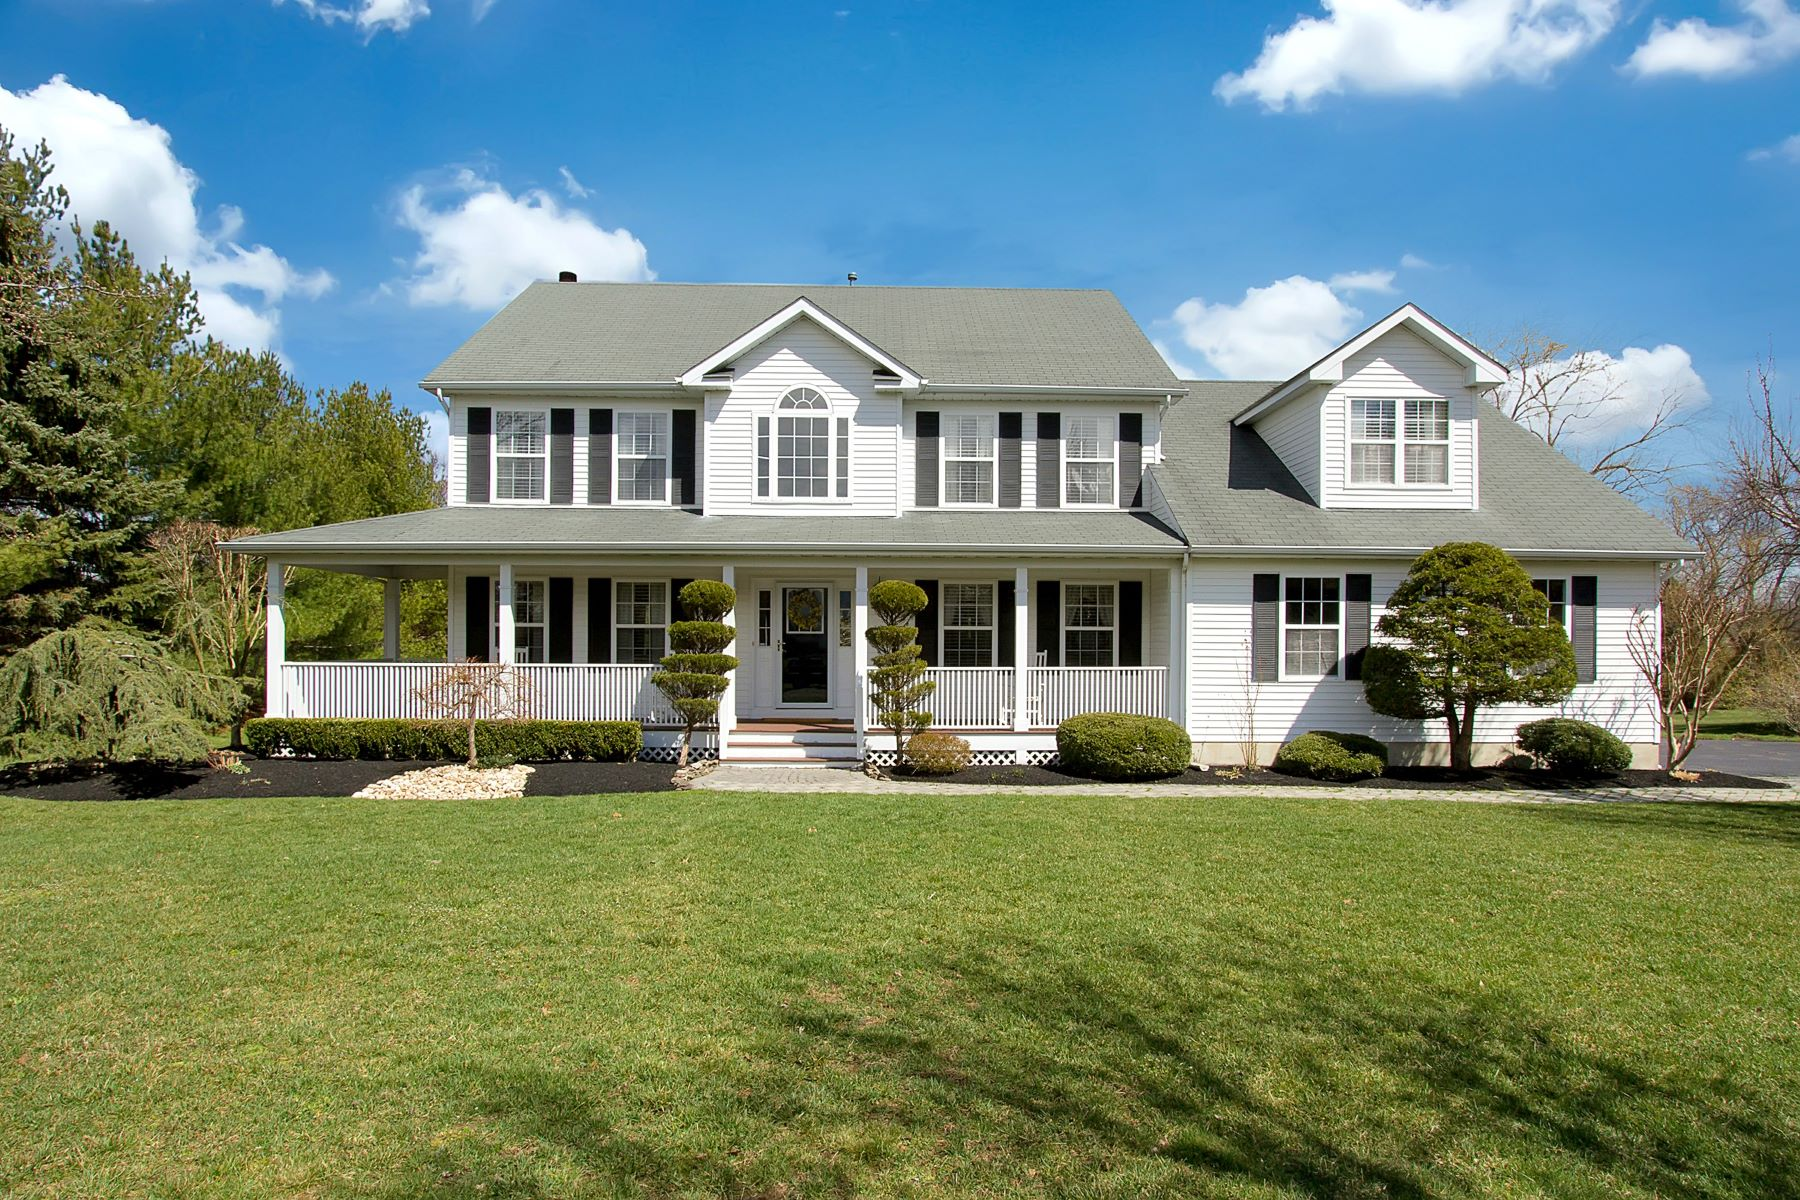 Casa Unifamiliar por un Venta en Charming & Inviting Colonial 10 Plantation Drive Freehold, Nueva Jersey 07728 Estados Unidos